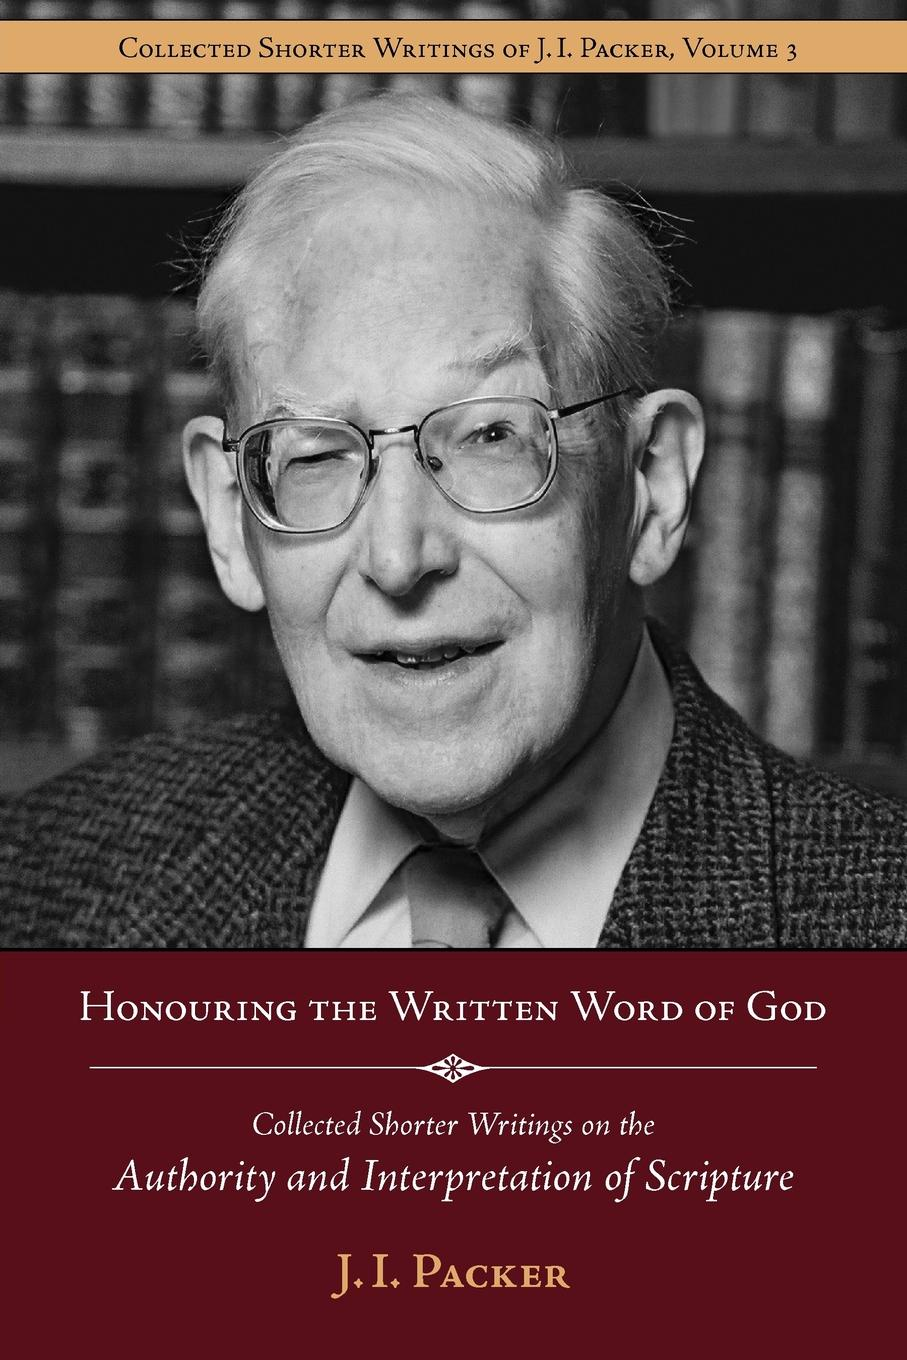 J. I. Packer Honouring the Written Word of God. Collected Shorter Writings J.I. on Authority and Interpretation Scripture